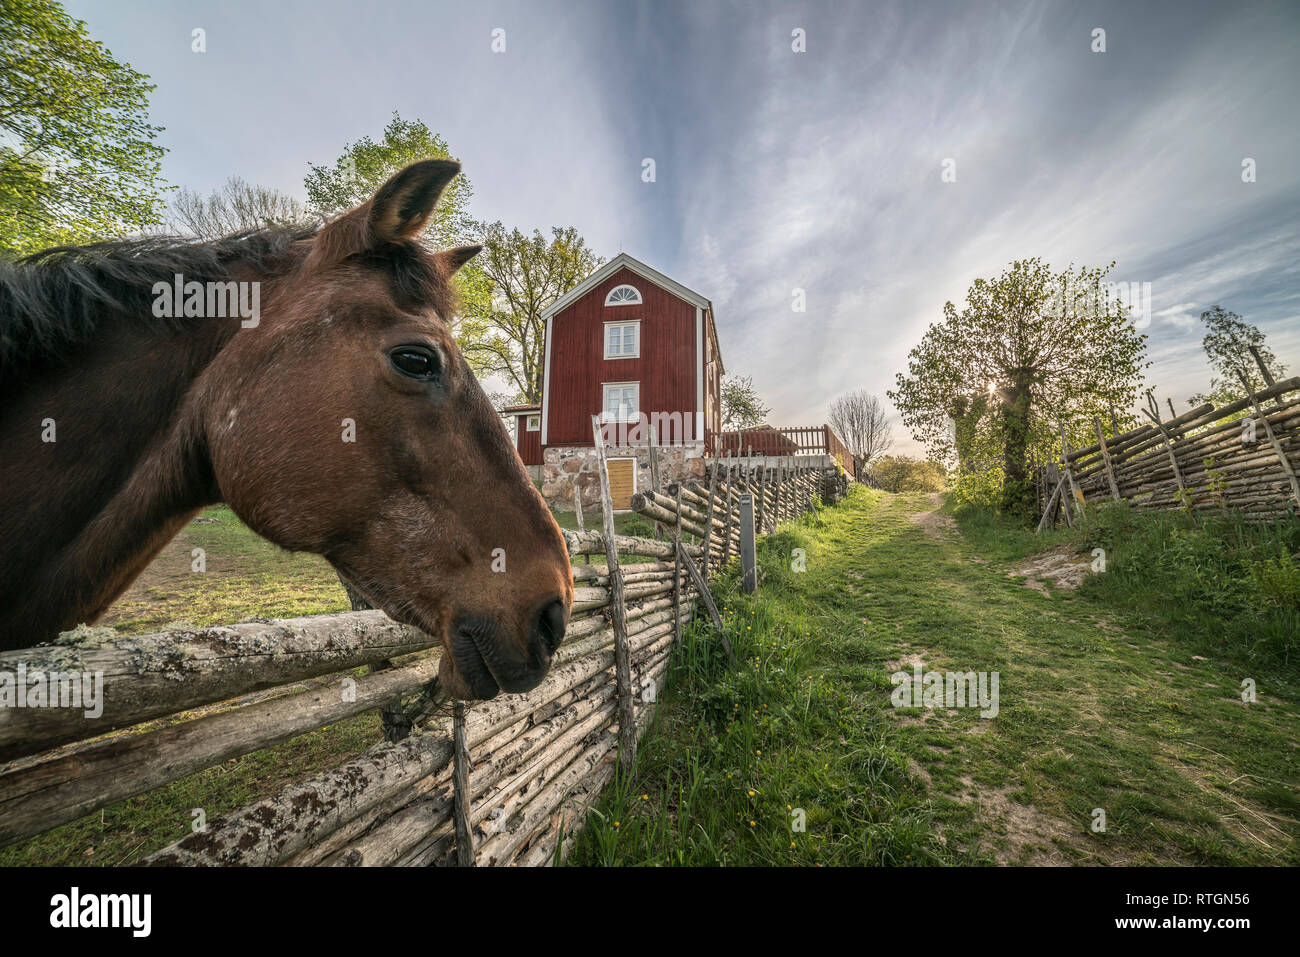 Horse and traditional roundpole fence and an old farm house at the village Stensjo by in Smaland, Sweden, Scandinavia - Stock Image